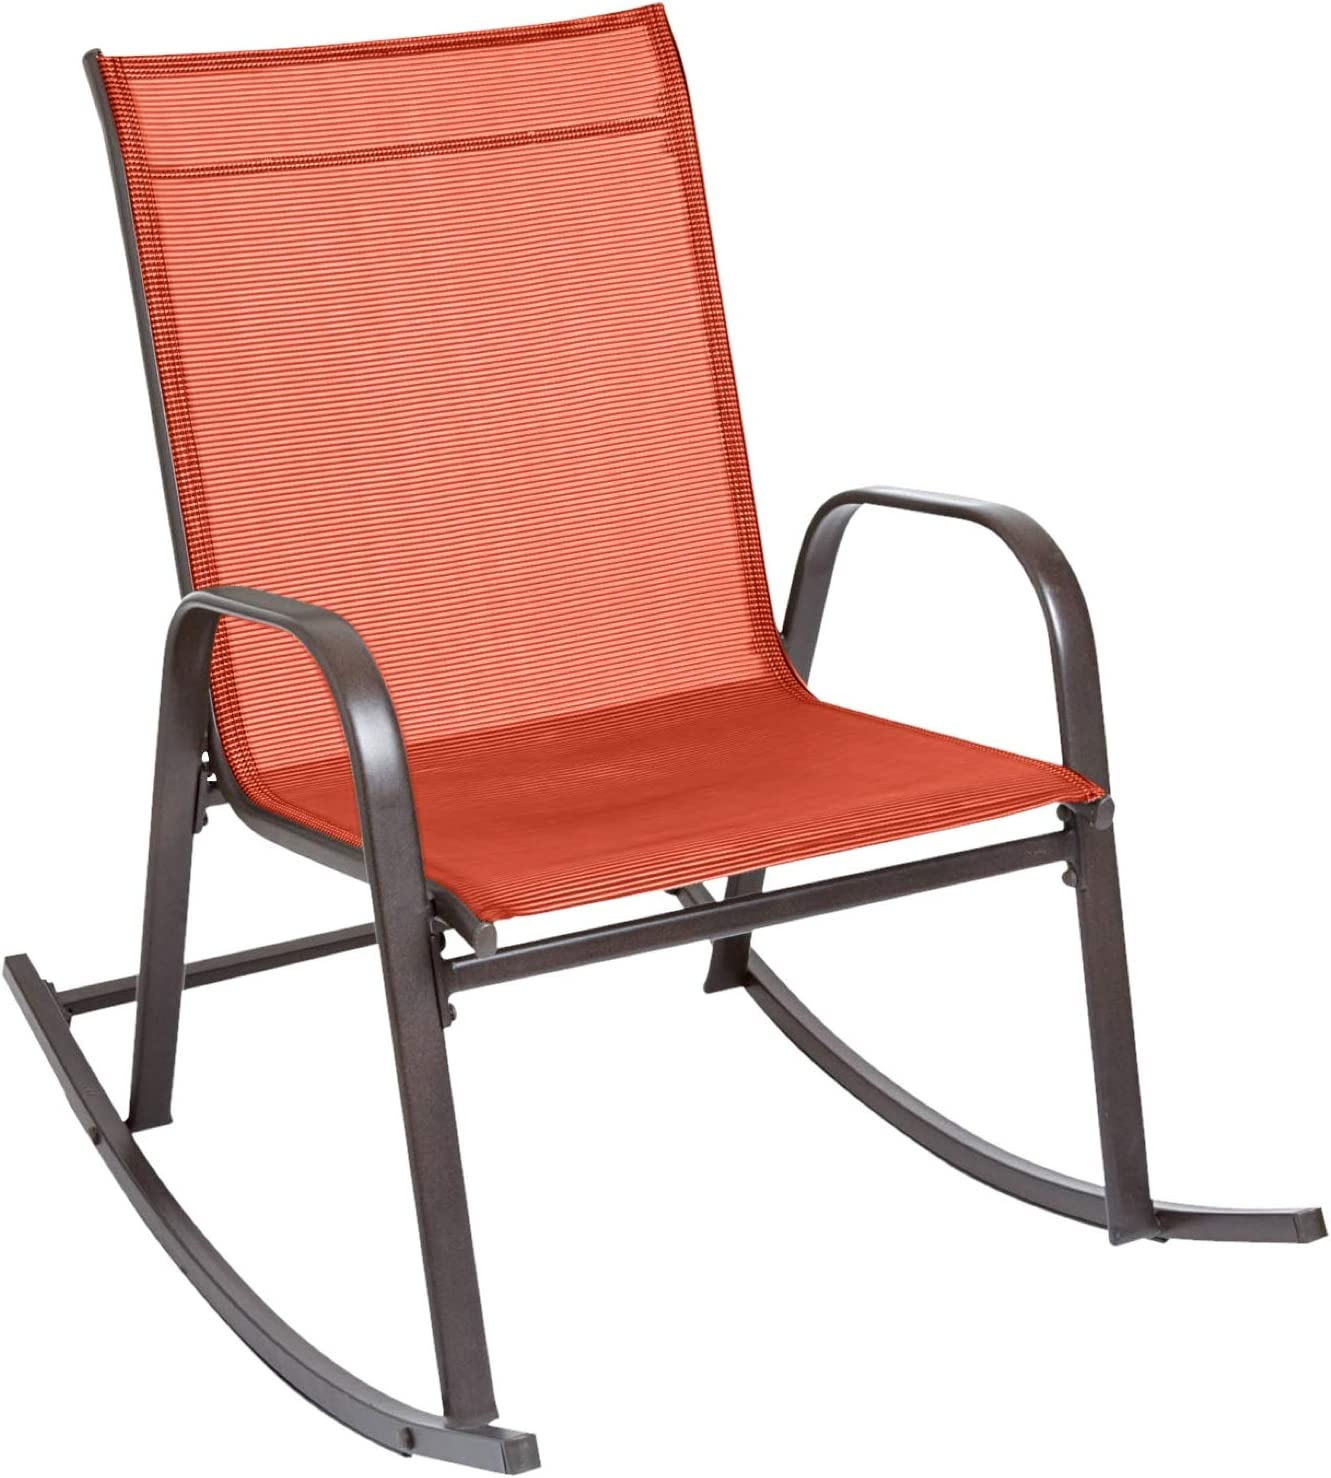 BrylaneHome Extra Wide Outdoor Rocker Geranium